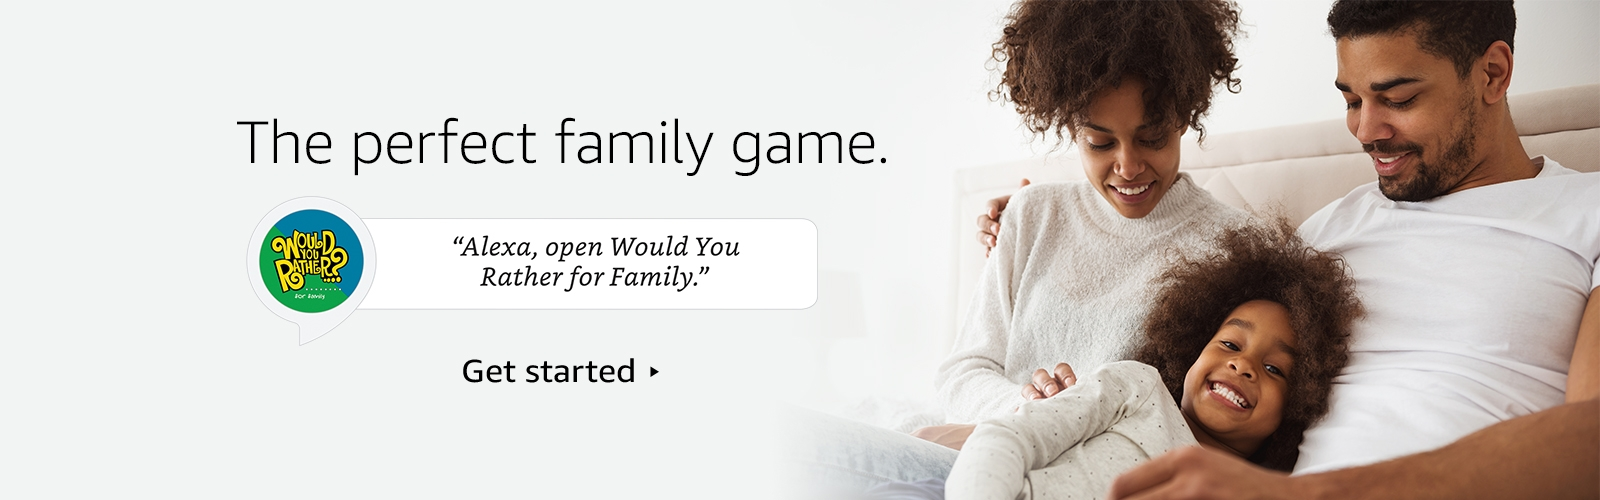 "The perfect family game. ""Alexa, open Would You Rather for Family."""